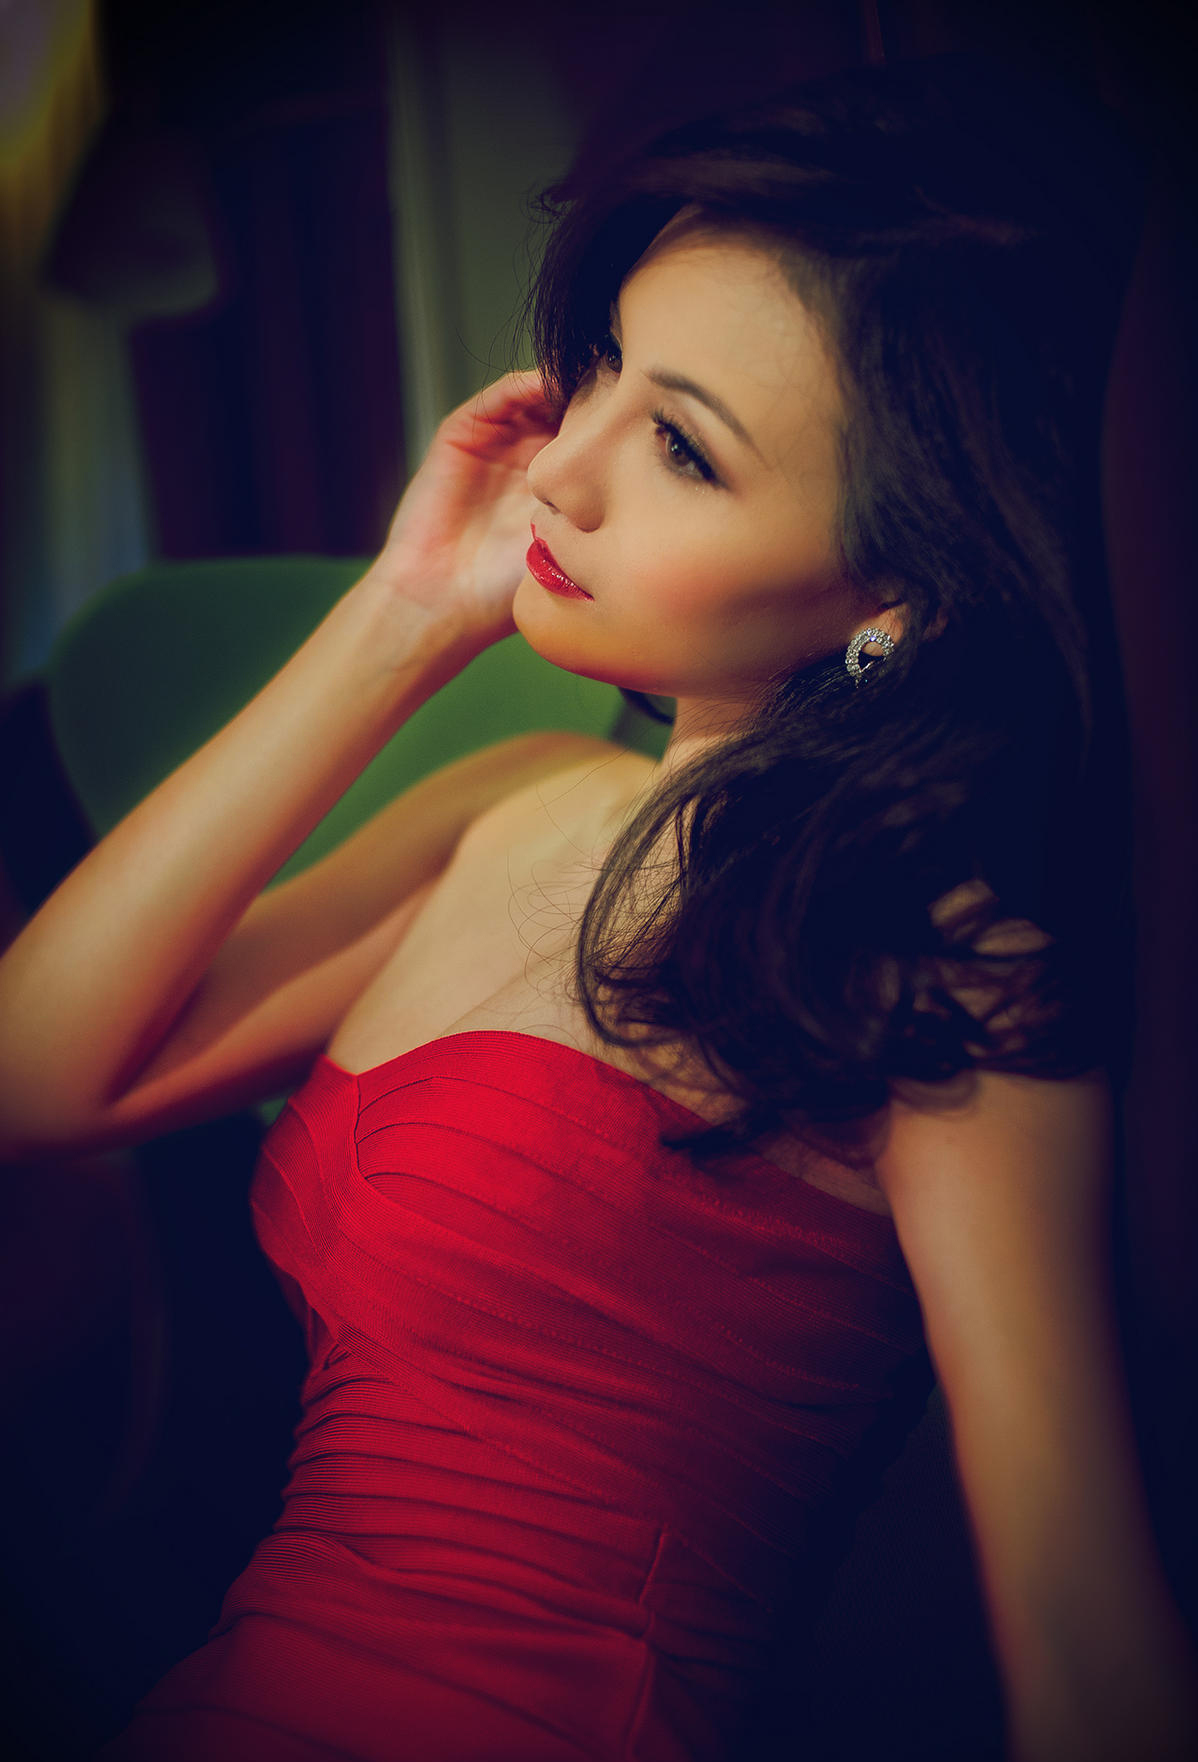 Pinterest Girls Wallpaper Elegant Chinese Lady Wallpaper 熟女的魅力 Gravure Girls Idols